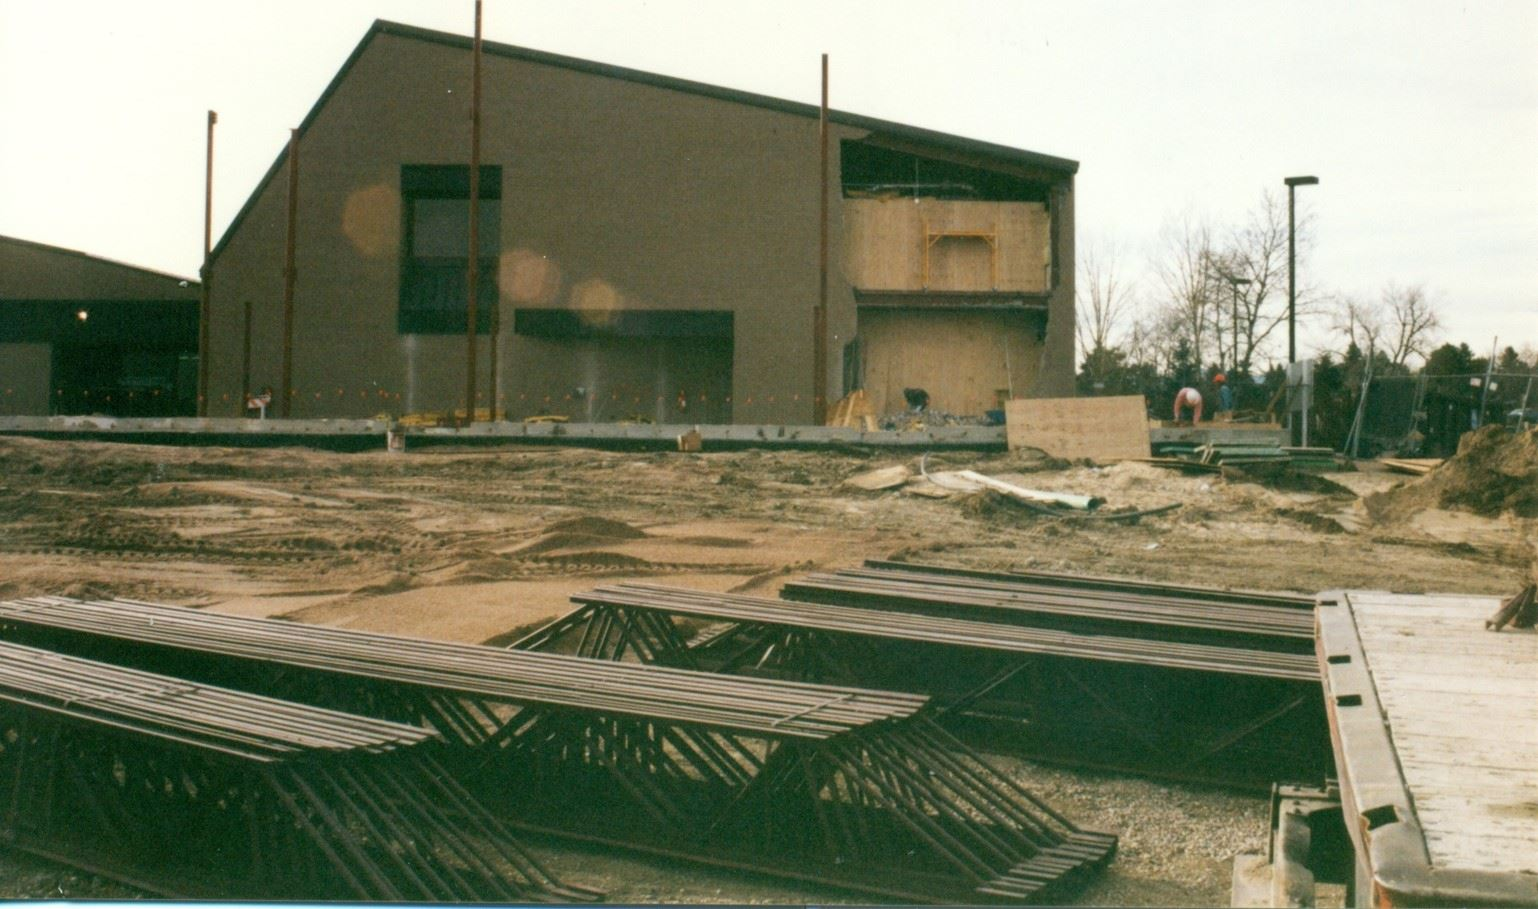 4th City Hall Remodel 1995